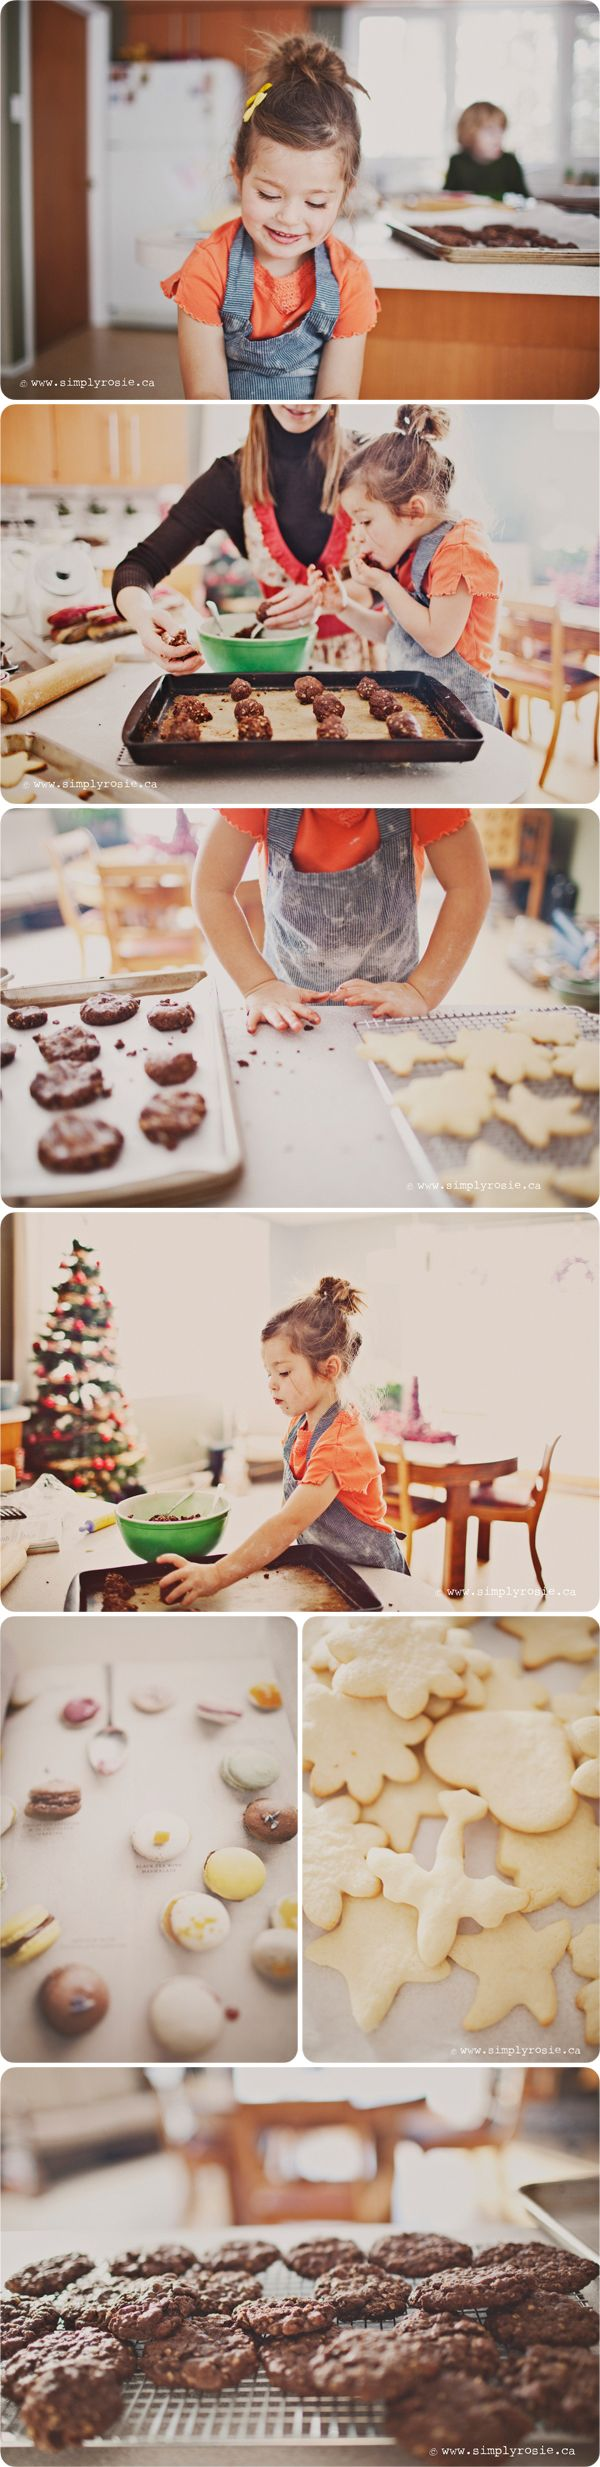 Best memories are making Christmas cookies with my mama...now it's a favorite tradition my girls love doing with their grandma!